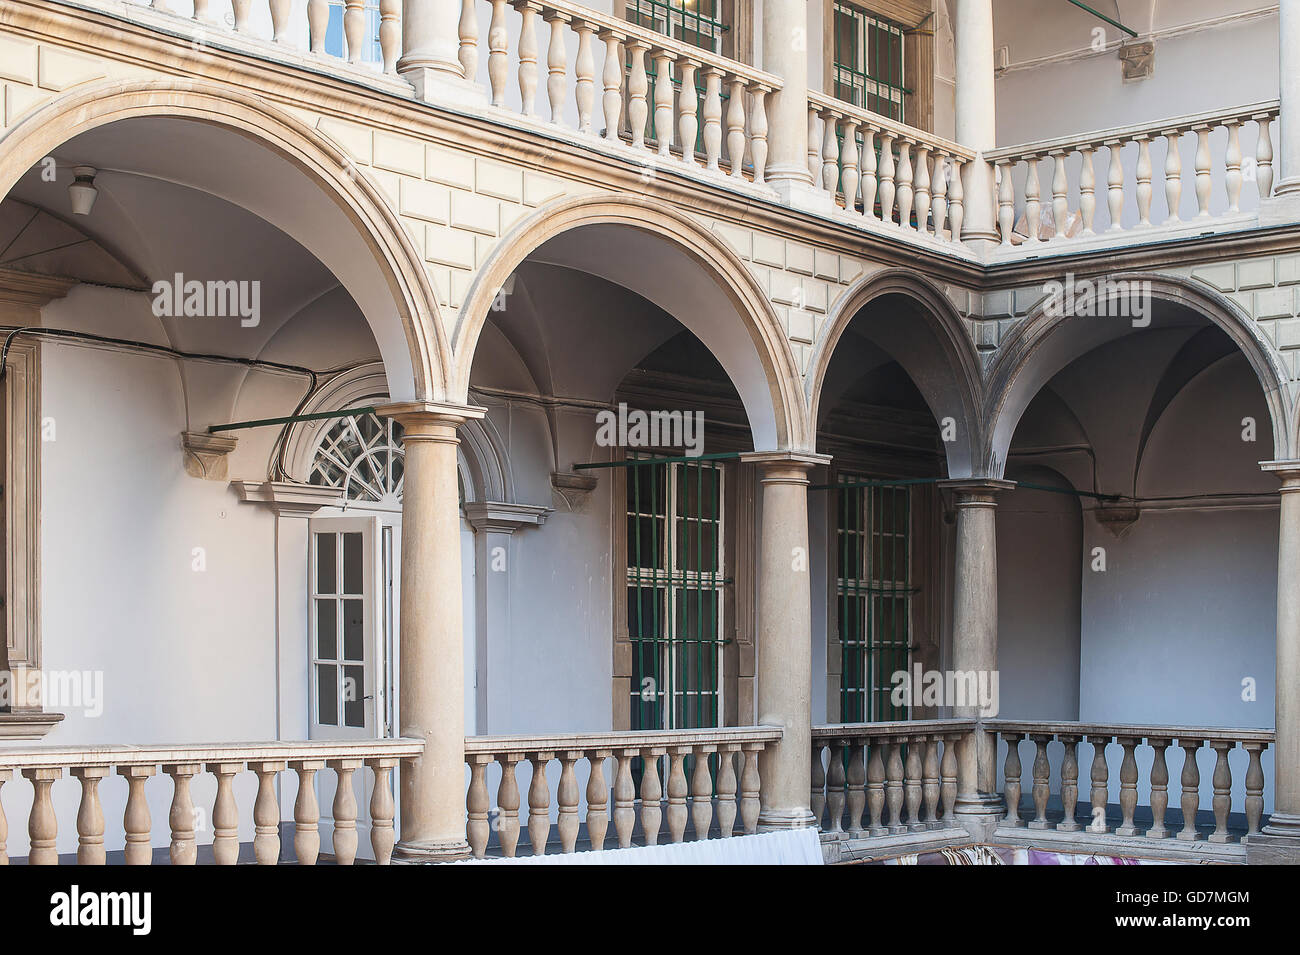 architectural arches in the Italian style the city of Lviv Stock